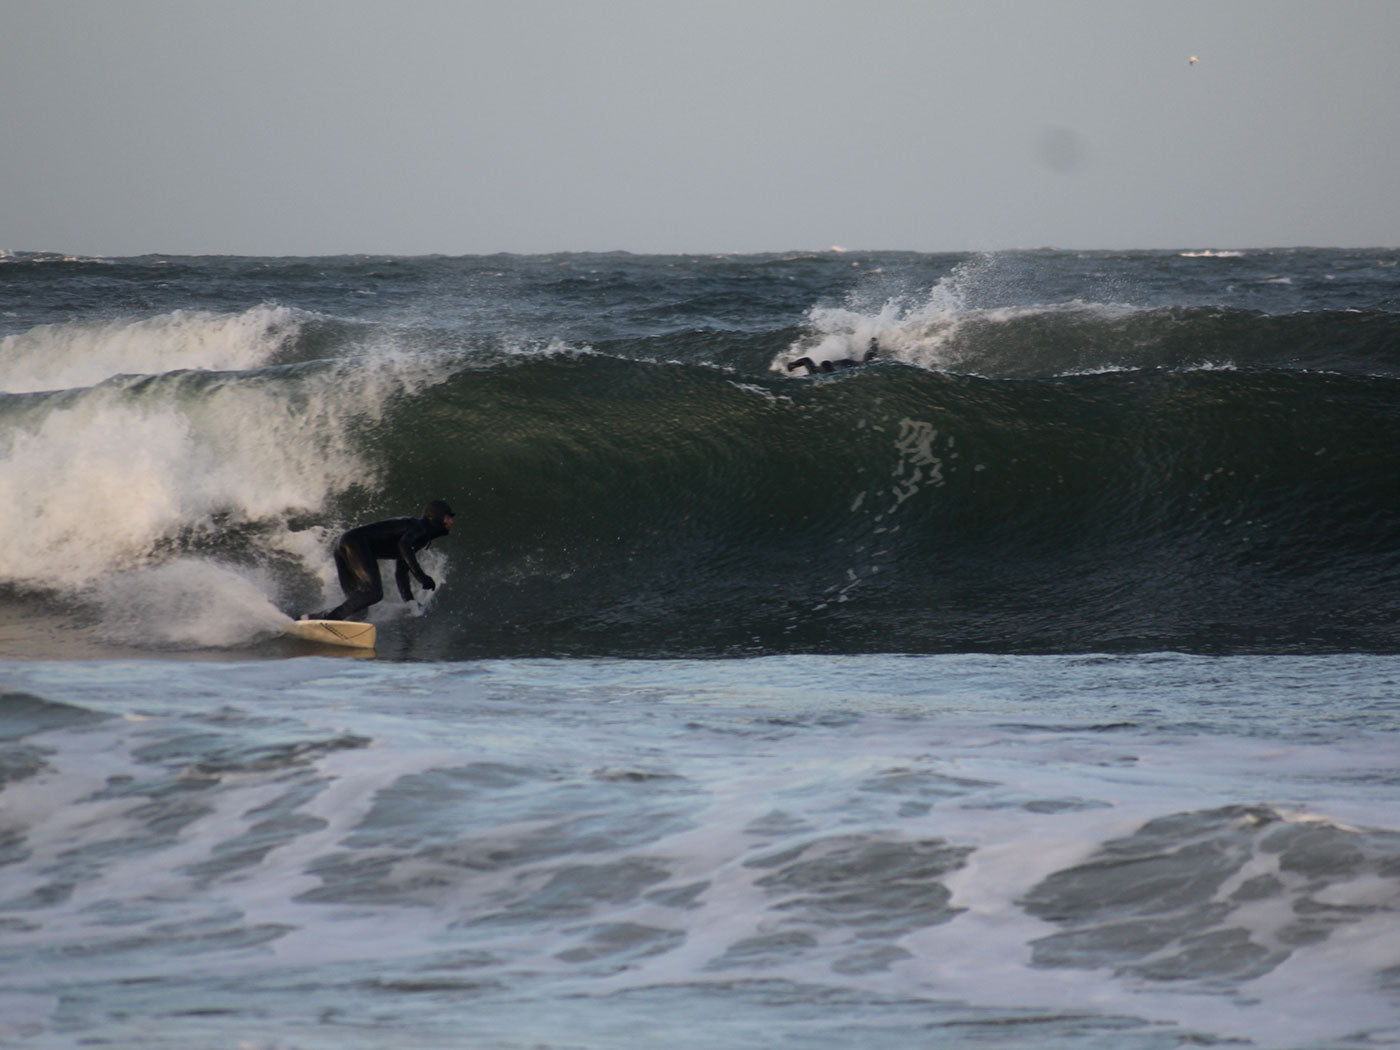 christoffer hartkopp surfing in sweden